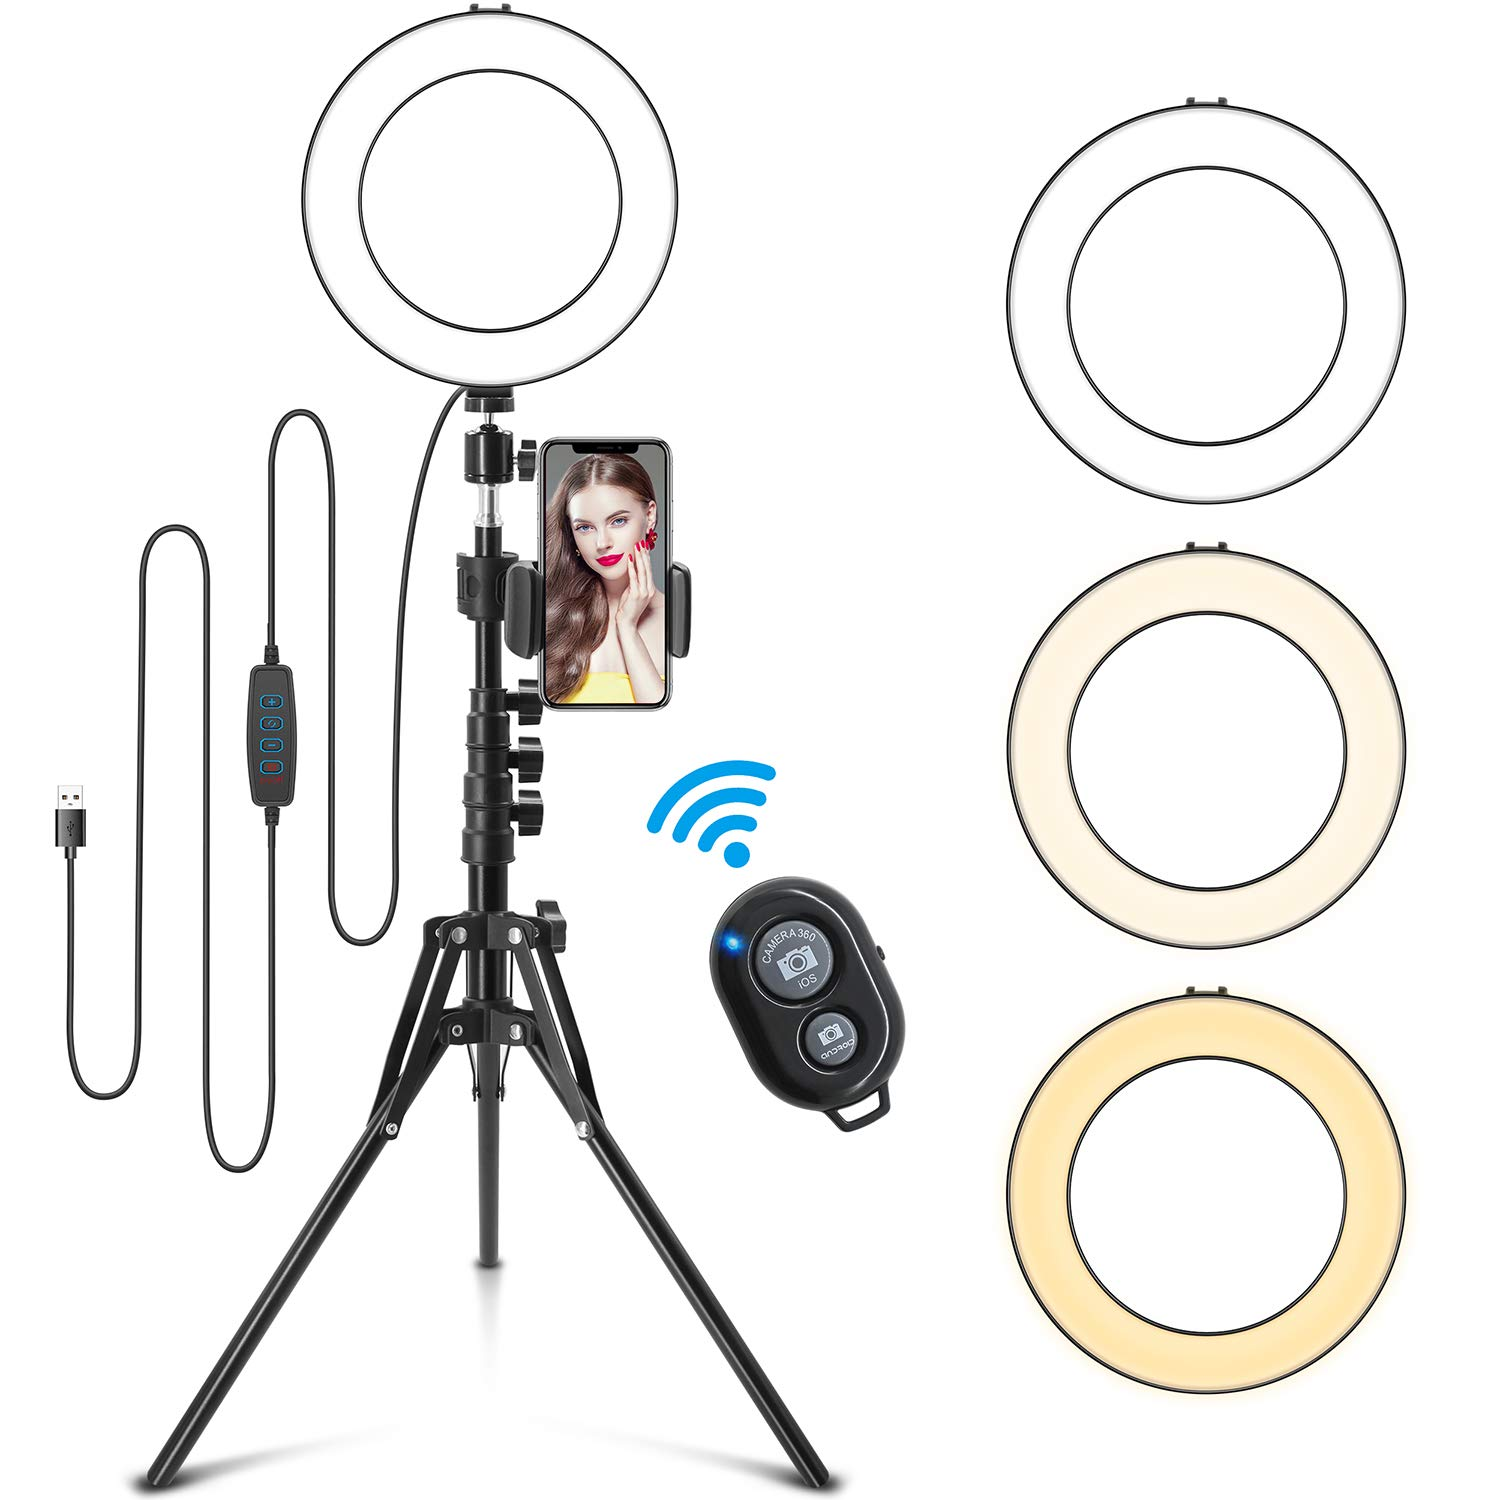 LED Ring Light 8'' with Tripod Stand Adjustable 15.6'' to 59'', Universal Cell Phone Holder, Color Change and Brightness Controllable, Camera Ringlight for Makeup Live Stream Photography YouTube Video by Jurgen K